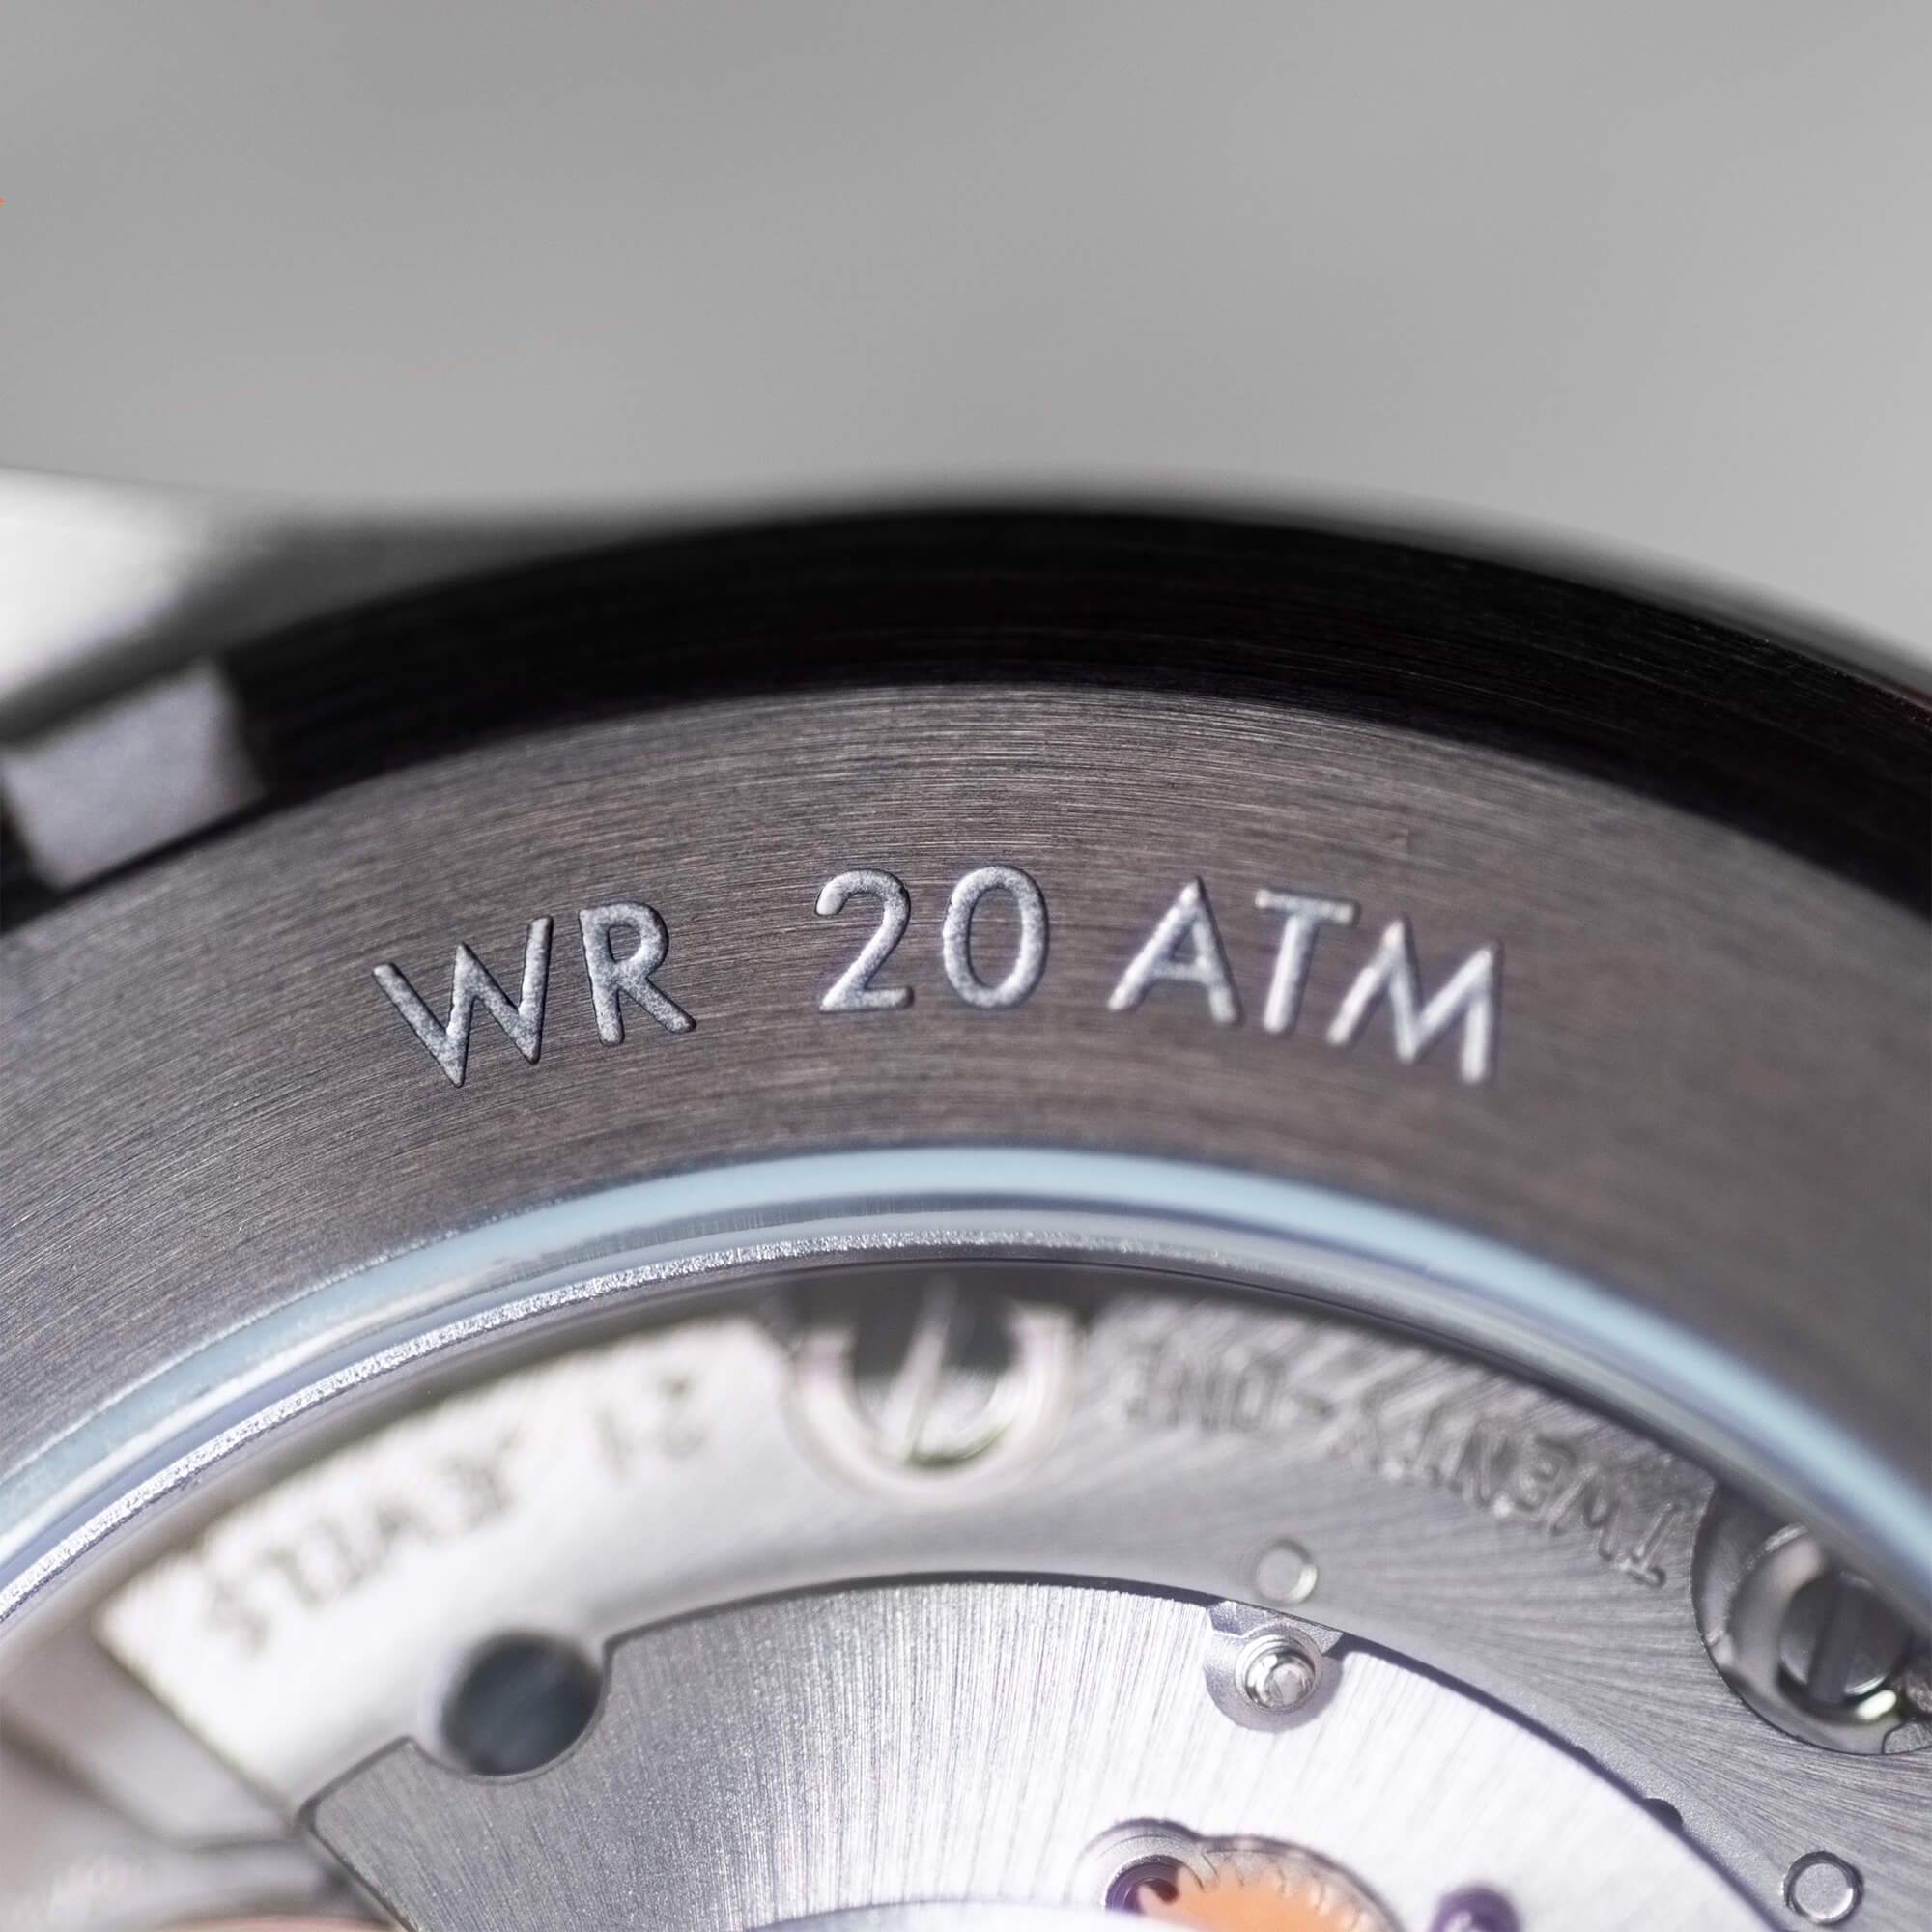 20 ATM WR - Go get wet. With 20 ATM (200 meters, 656 feet) of water resistance, screw down crown, and multiple rubber gaskets you're good to go underwater deeper than you'll ever want to go. Seriously though, did you know that 200 meters is the depth limit for underwater plants to absorb nutrients from light? Yeah, you're covered.